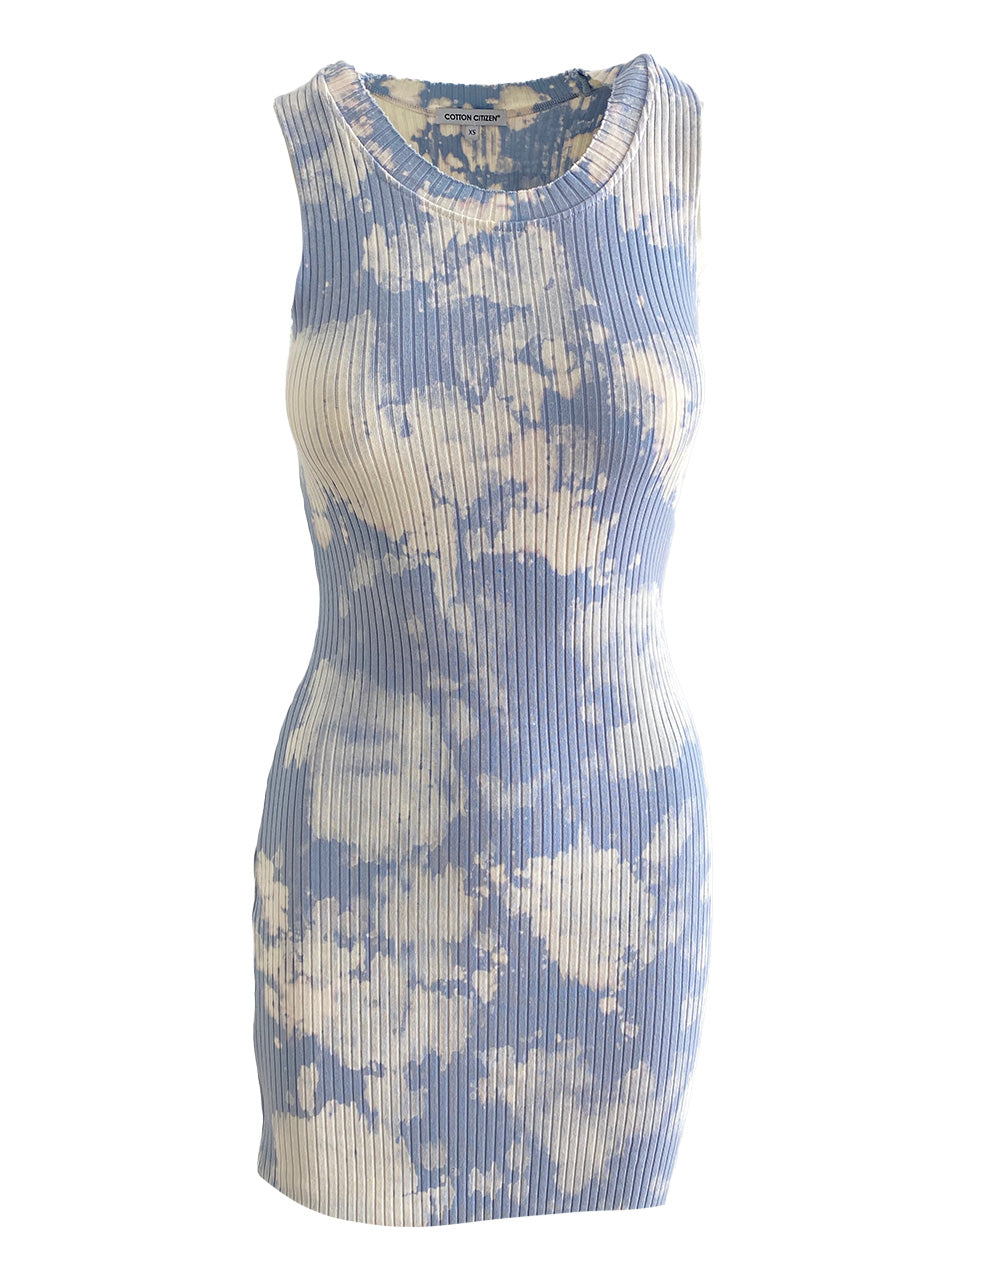 Ibiza Tank Dress in Crystalline Splatter